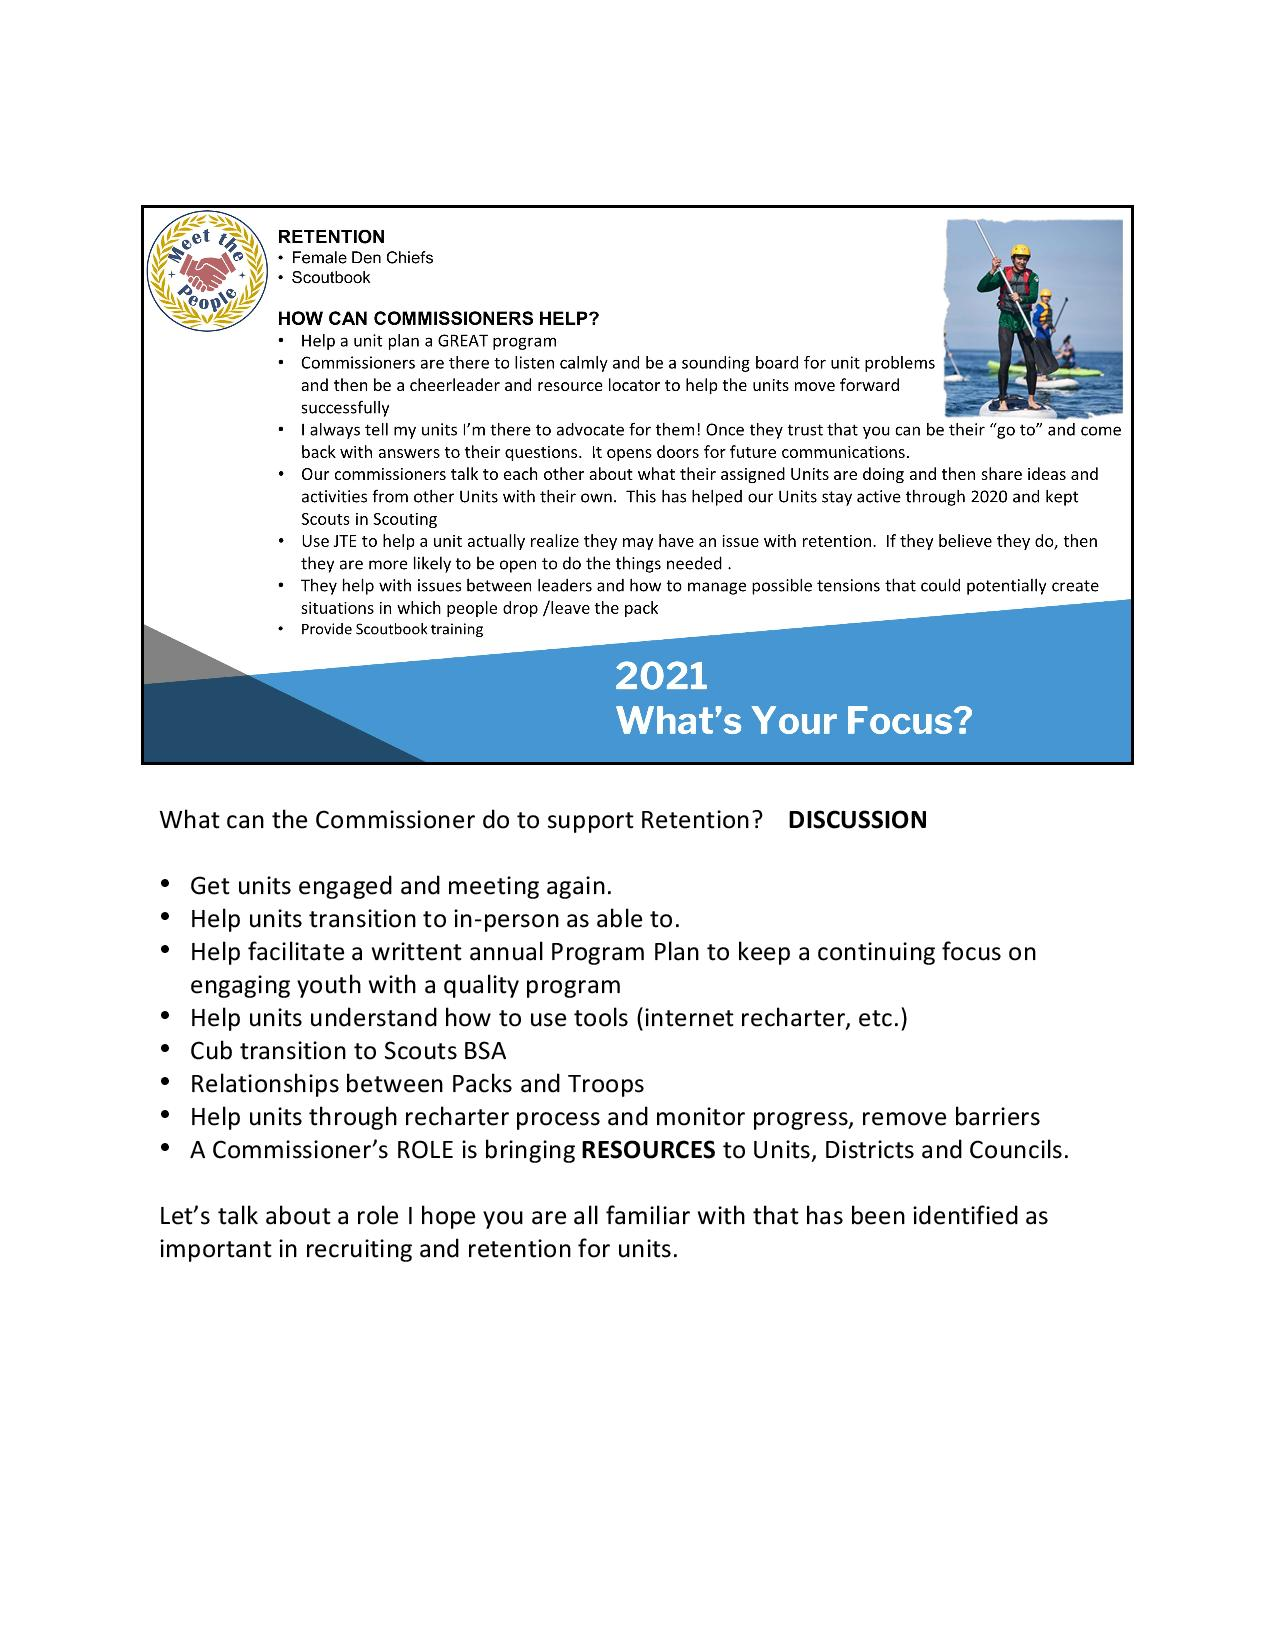 2021 Membership Summit - Commissioner Partnership Notes-page-008